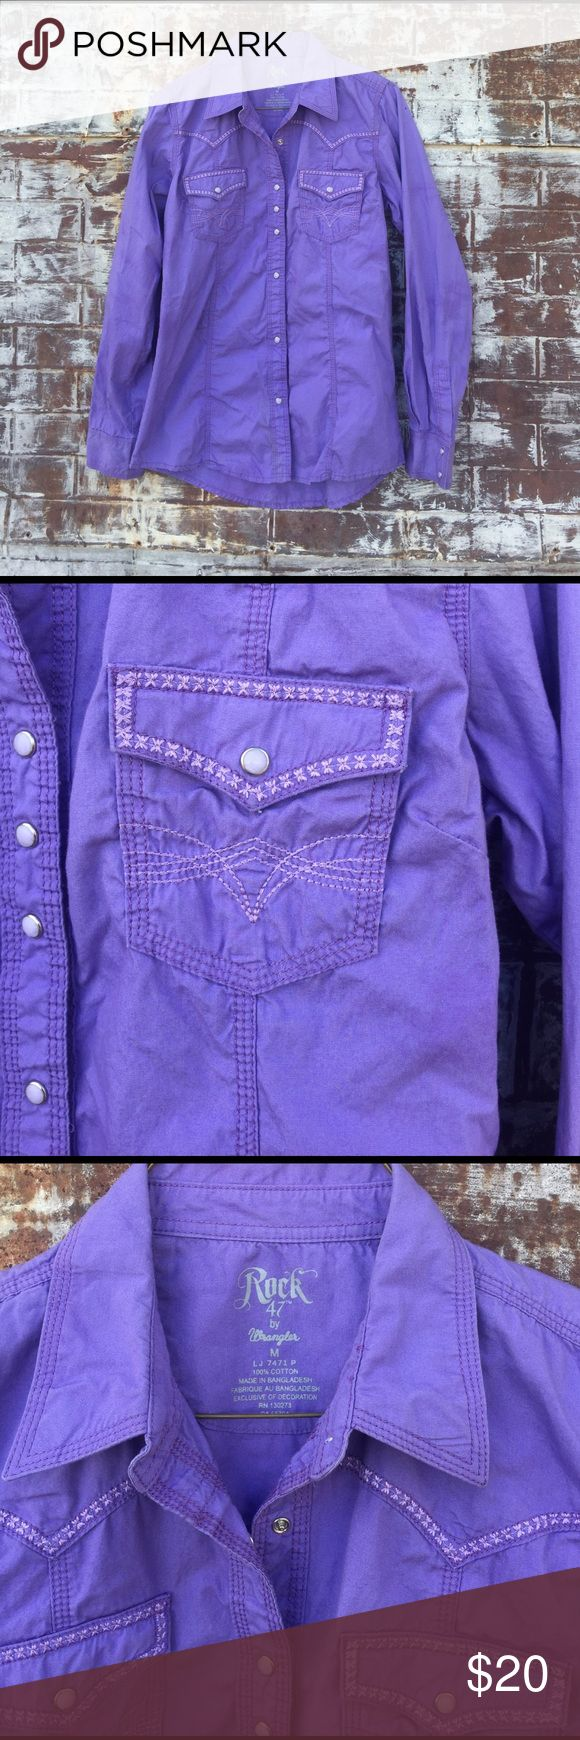 ROCK 47 PURPLE WESTERN Rodeo Cowgirl Shirt Ready for the Rodeo.✨ super cute purple Western shirt with embroidery detailing and pearl snaps. Excellent condition Wrangler Tops Button Down Shirts